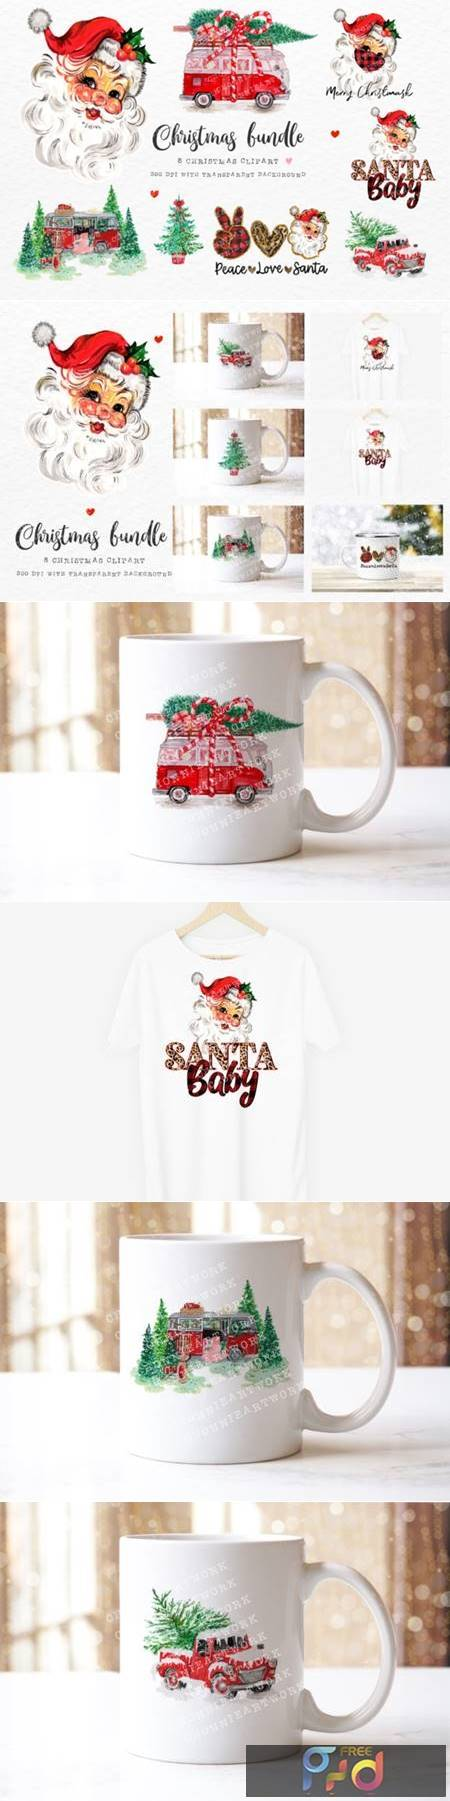 Christmas Bundle with Santa Baby 6918720 1